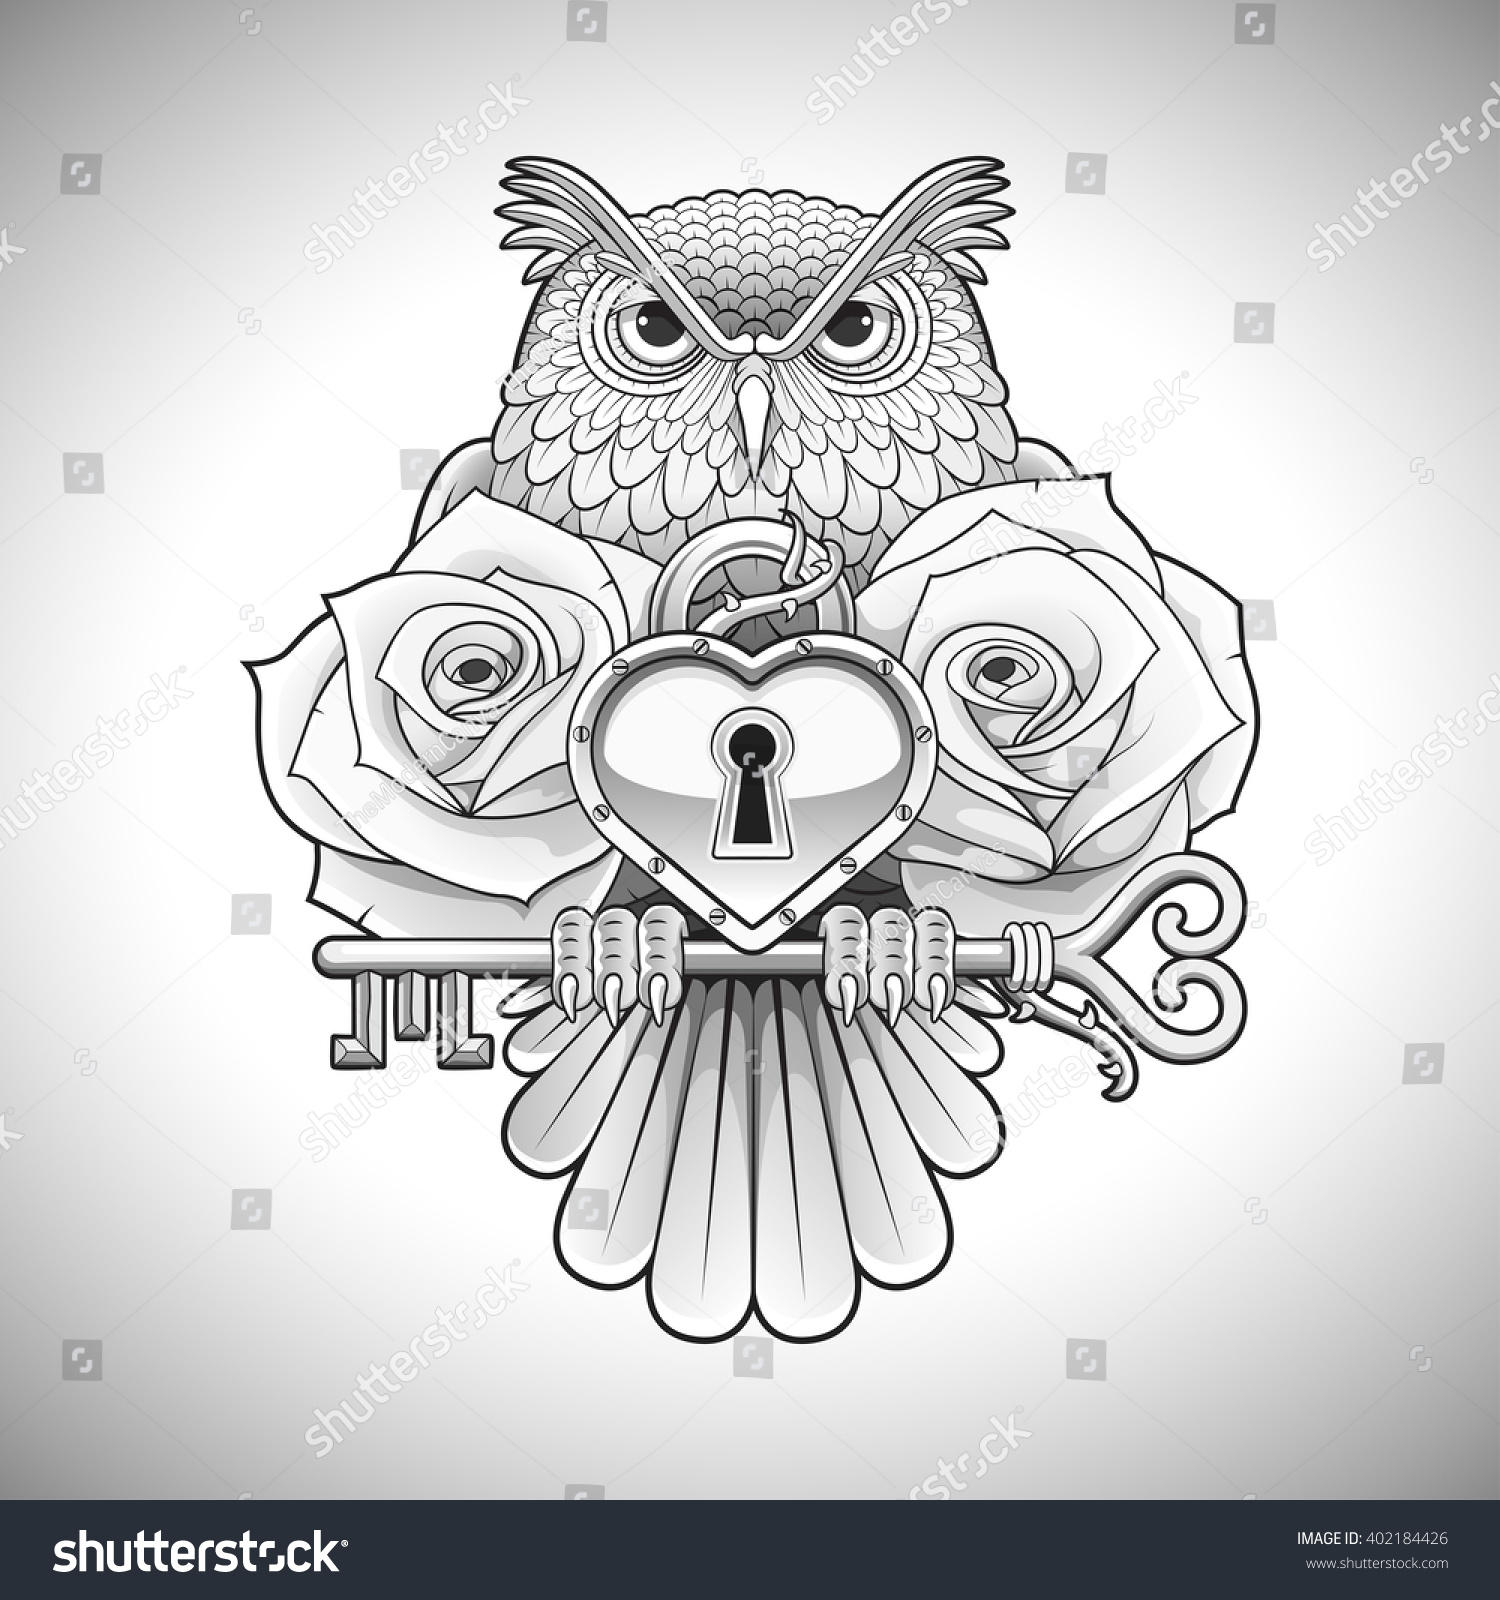 Owl Line Drawing Tattoo : Beautiful line drawing tattoo design owl stock vector